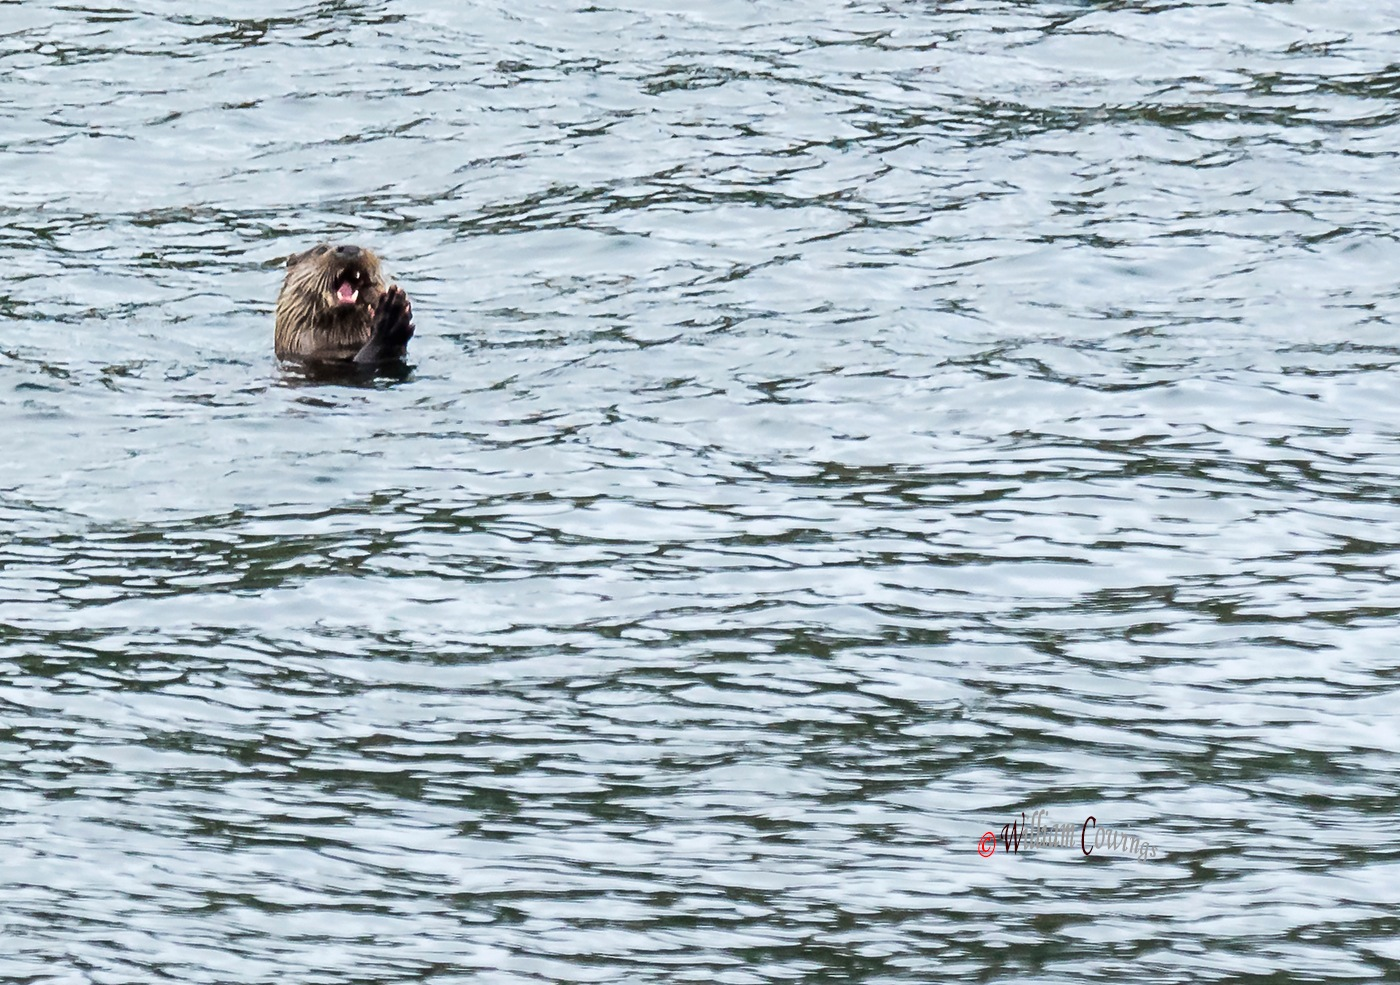 Otter by williamcowings